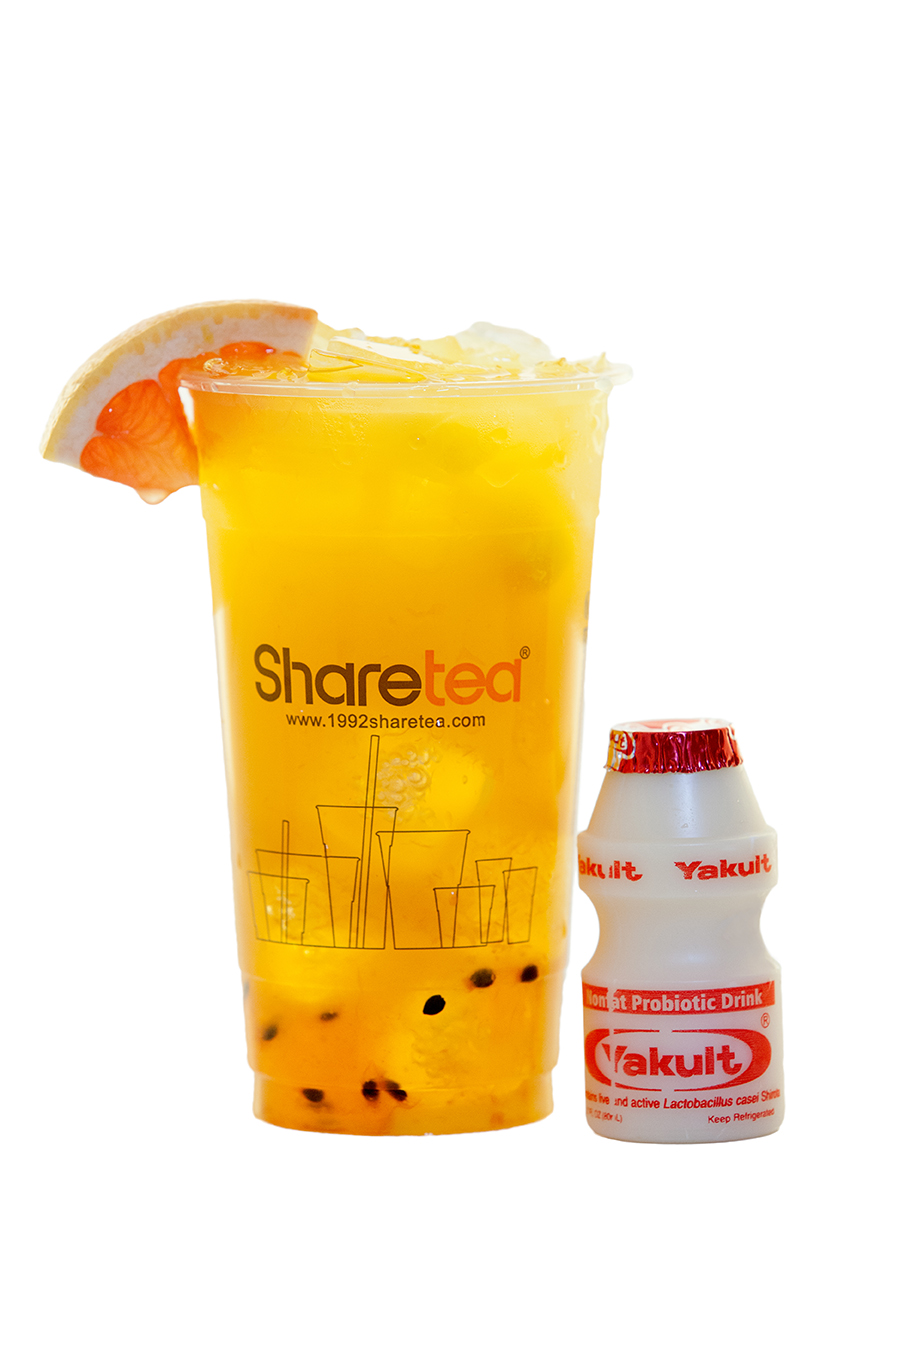 PASSION FRUIT WITH YAKULT